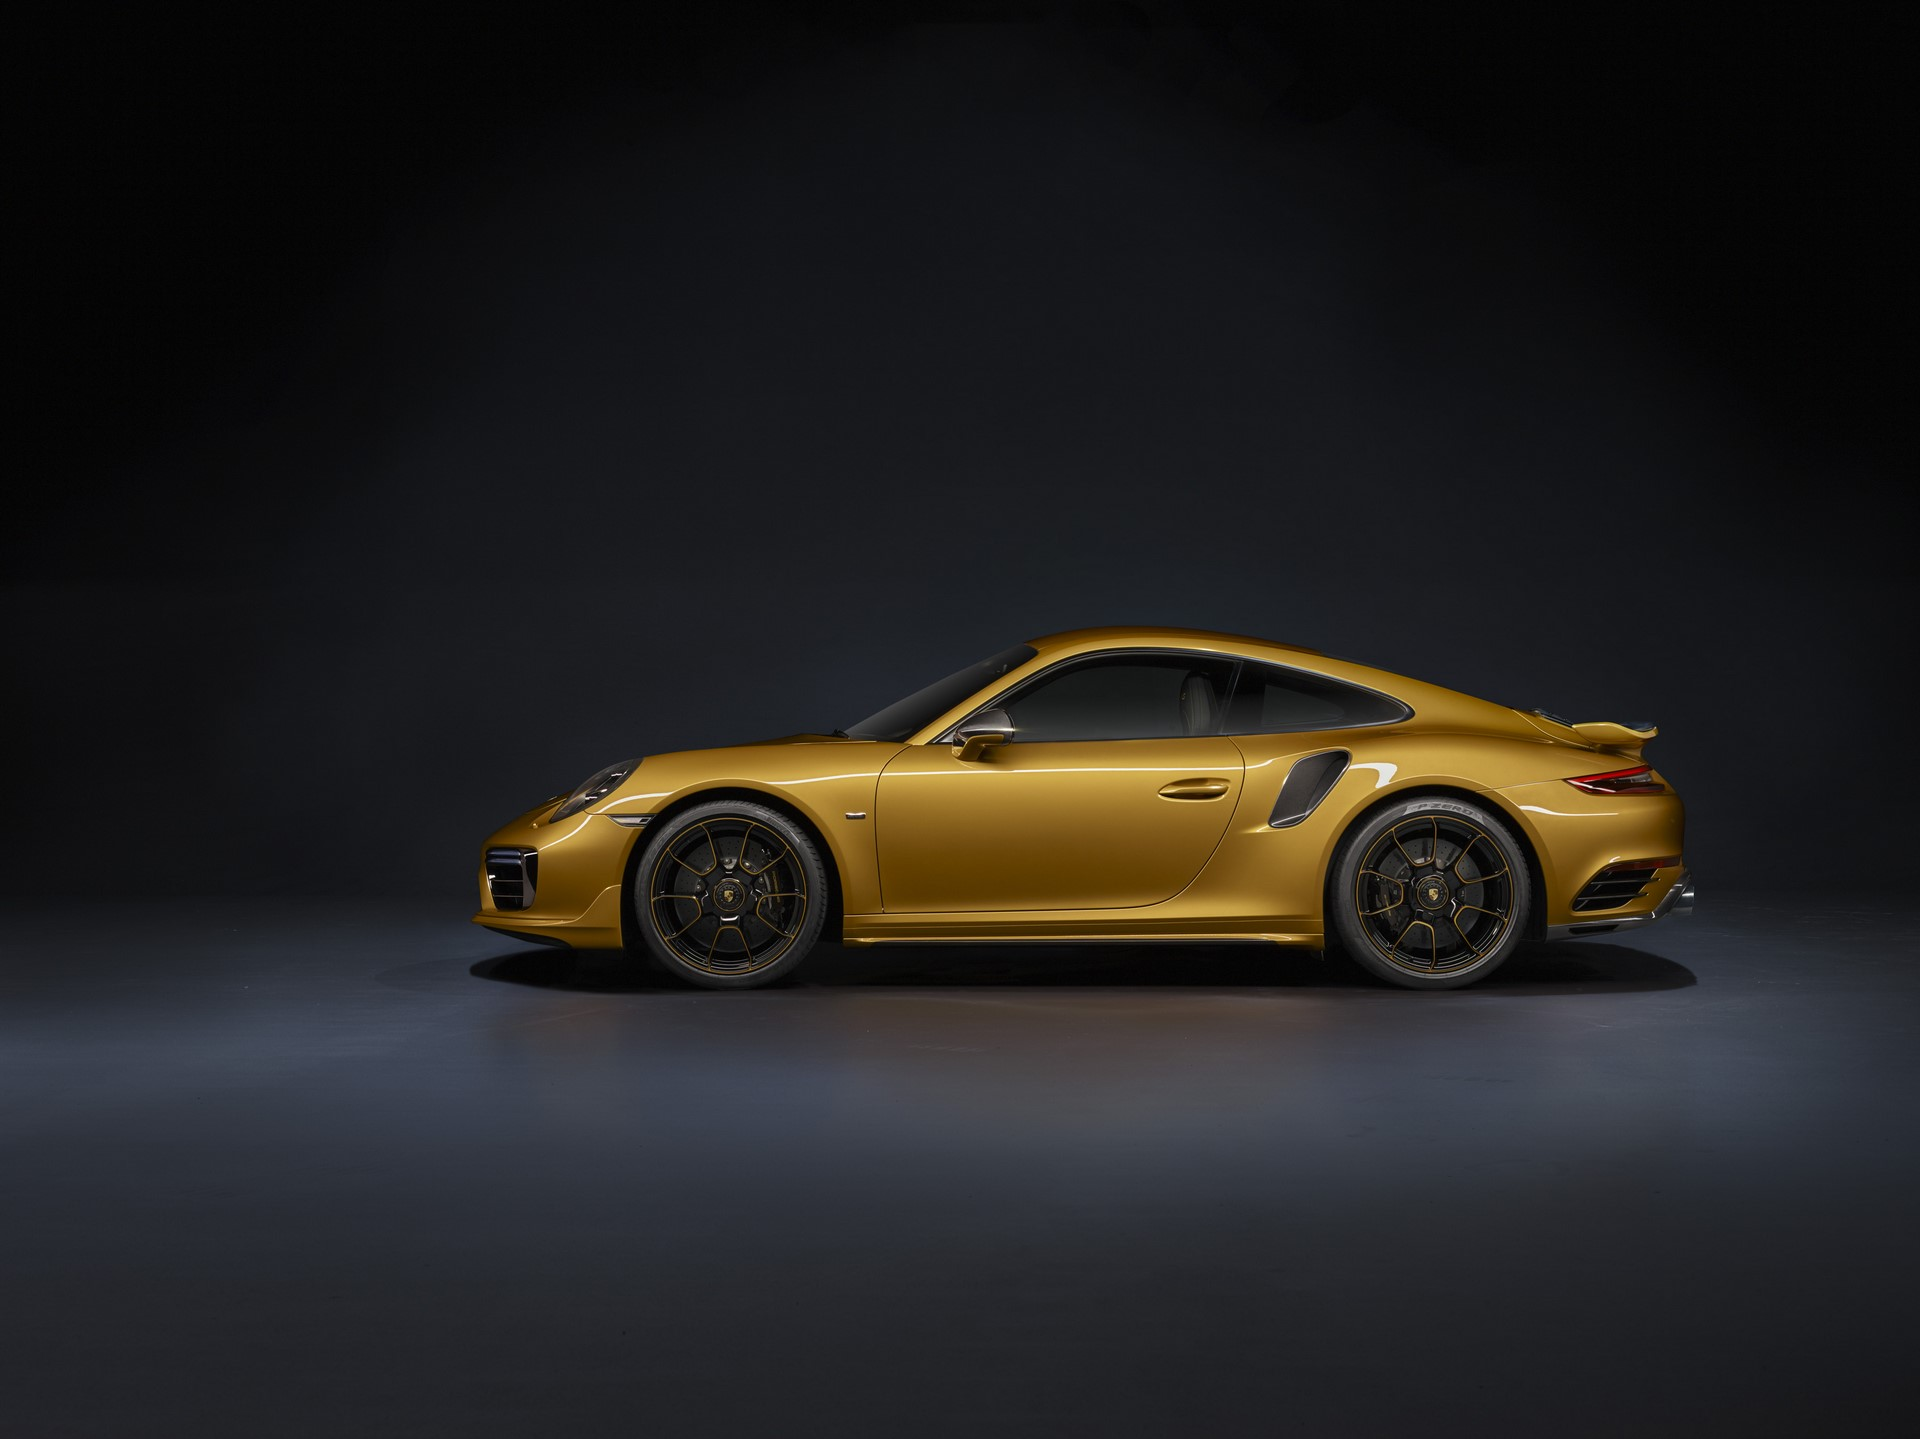 Porsche 911 Turbo S Exclusive Series (4)